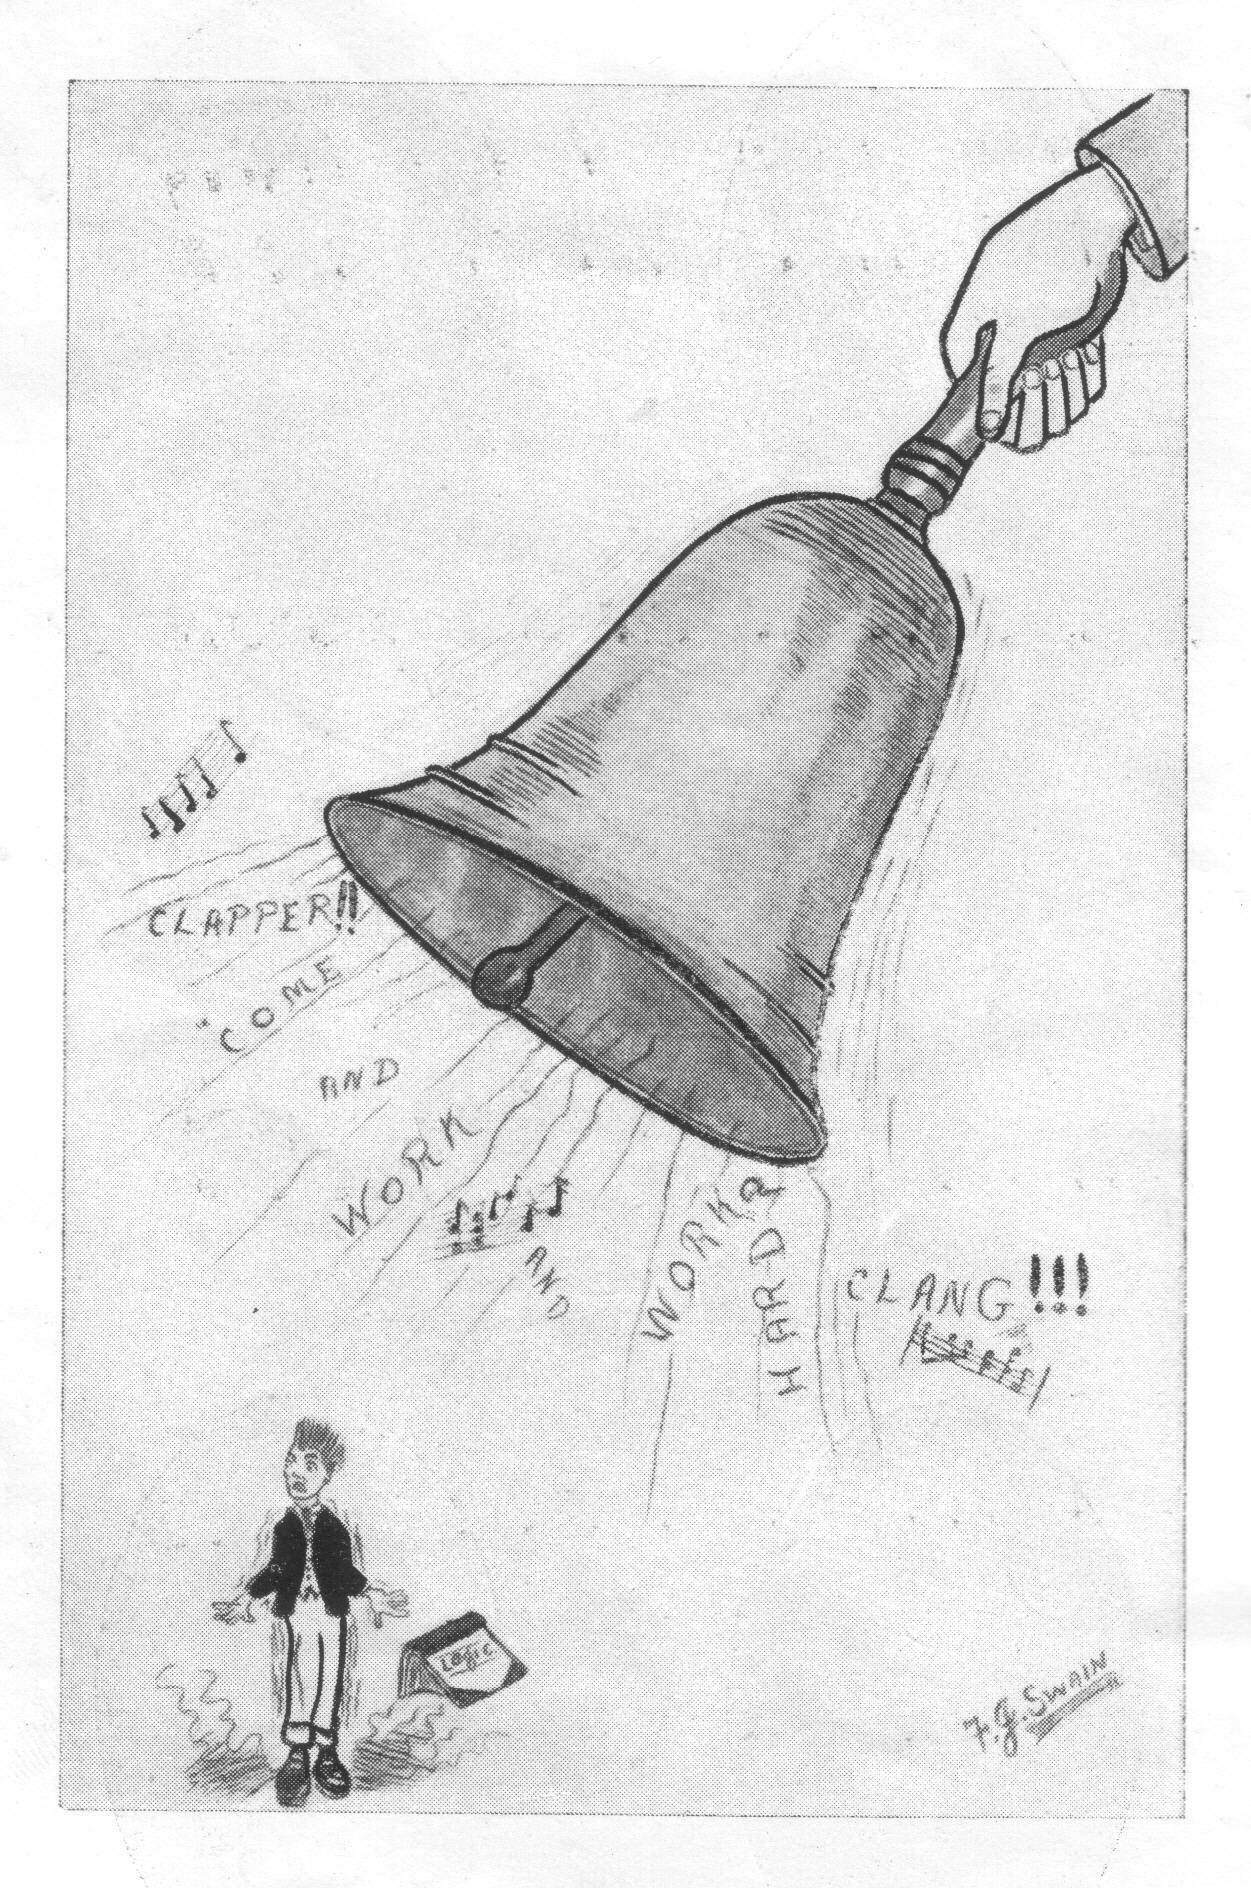 College Bell - Student Annual 1922